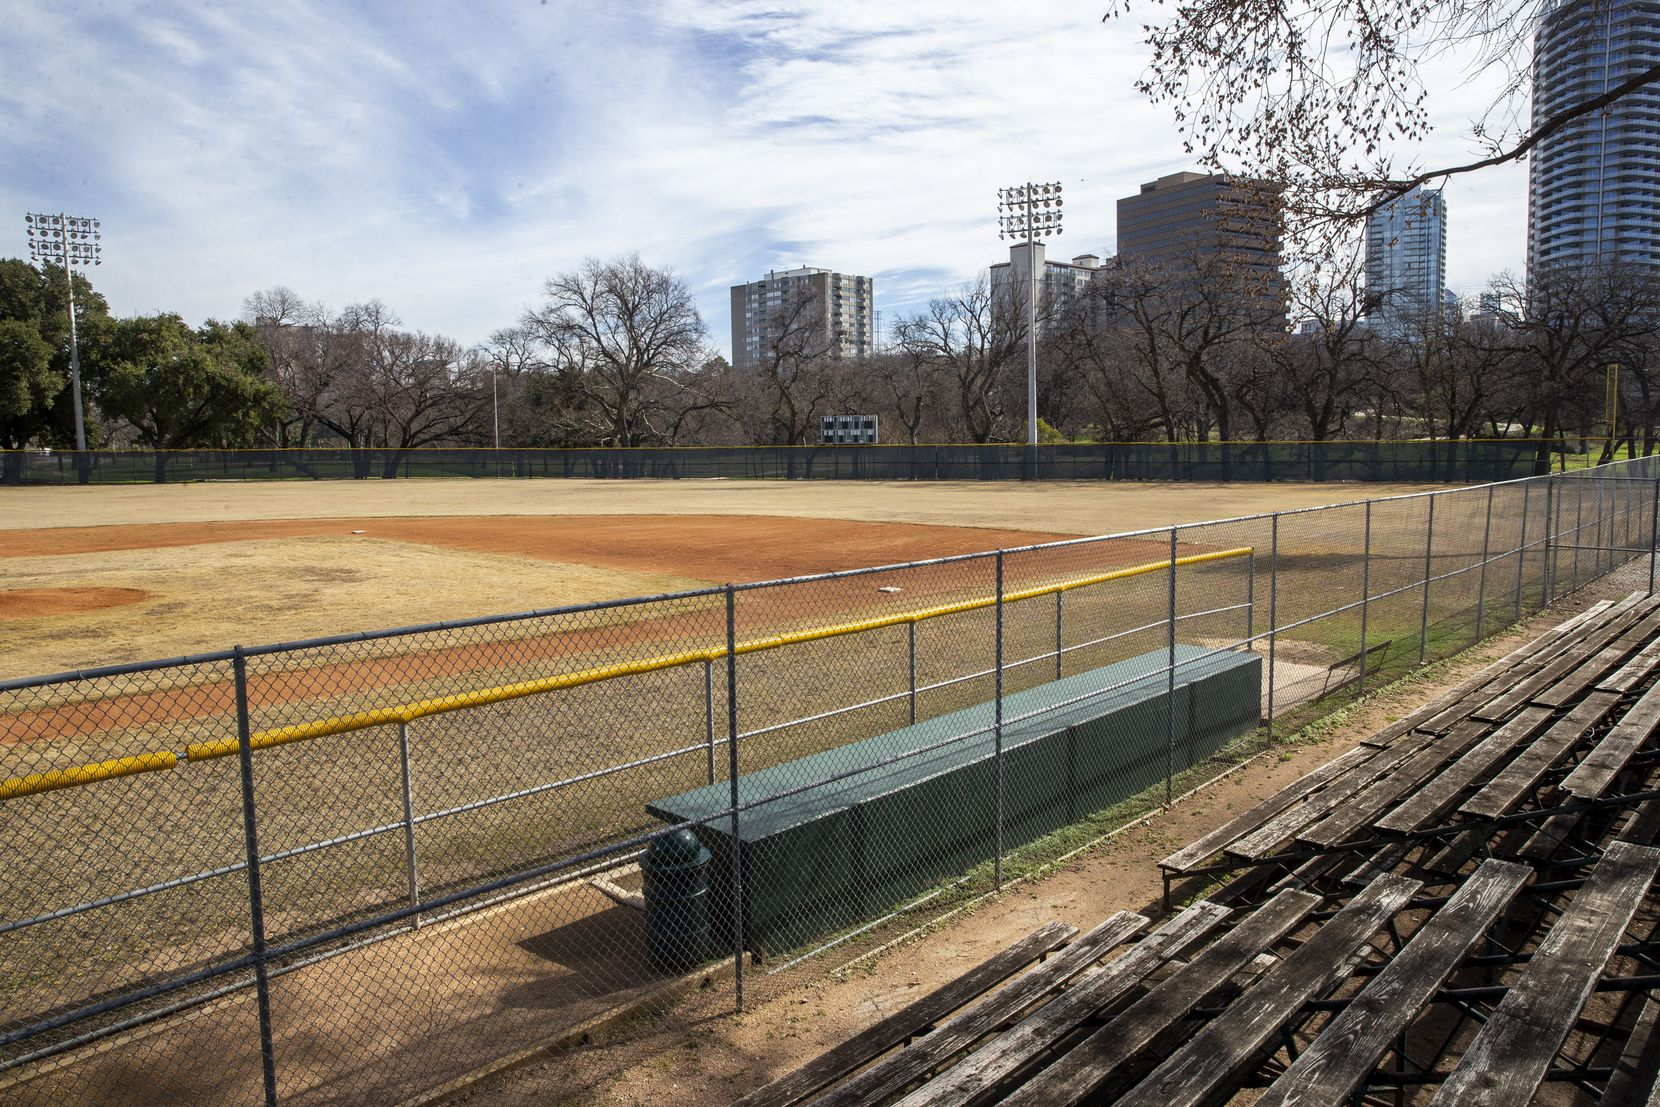 The ballpark at Reverchon Park in the Oak Lawn/Uptown area of Dallas on Friday, Feb. 7, 2020. During a press conference on Friday, neighbors expressed dissatisfaction in the city's decision to allow a $15 million deal to allow a private developer to build a baseball stadium in the park without seeking community input. Council members voted 11-4 to approve the deal last month.